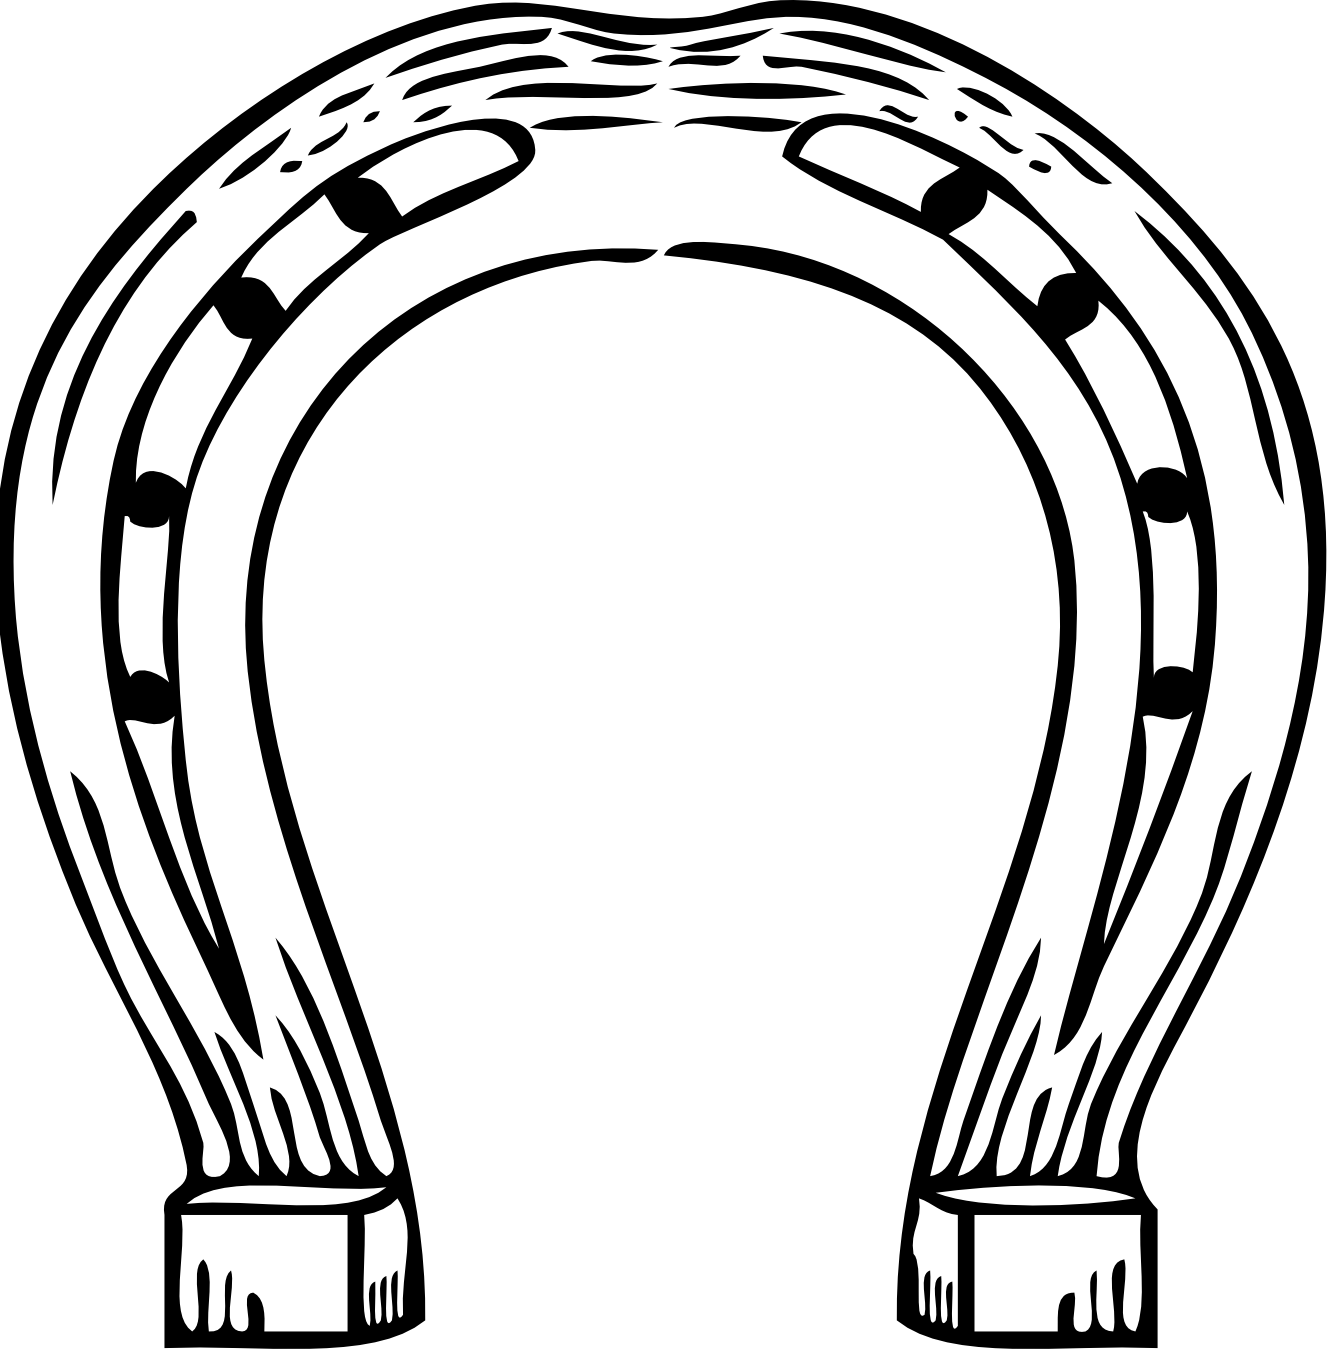 Horse shoe image best. Horseshoe clipart footprint